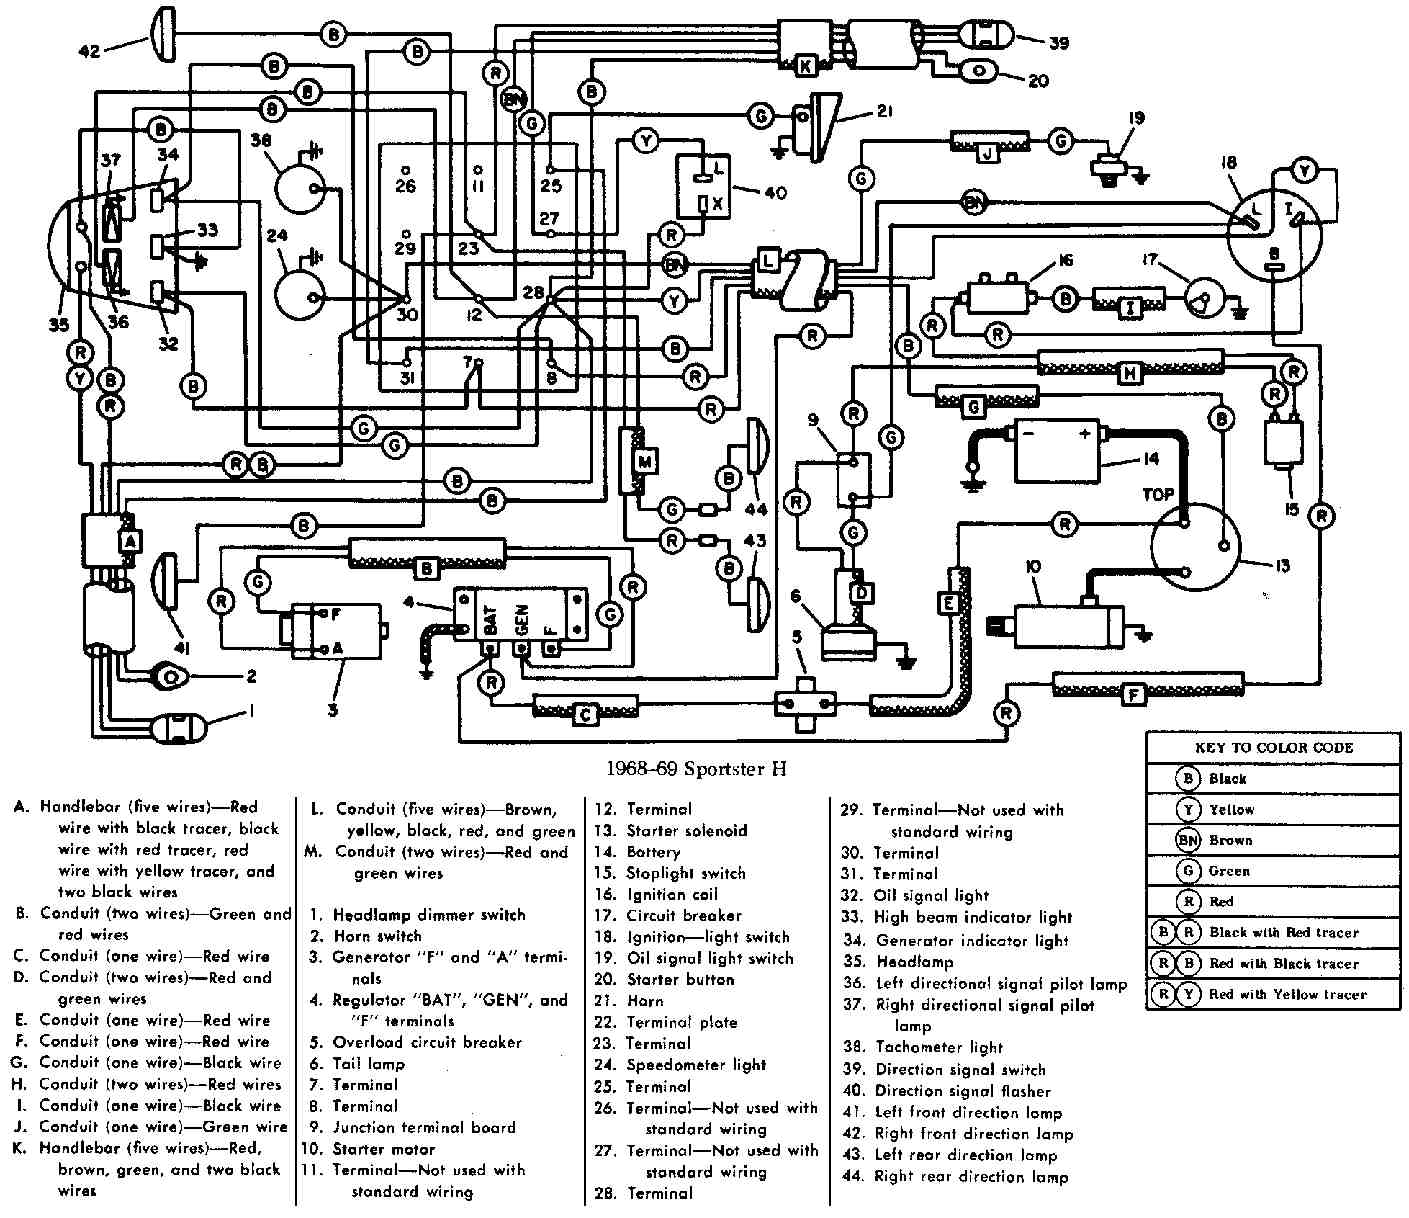 Wiring diagram for a table saw gallery wiring table and diagram ridgid table saw wiring diagram images wiring table and diagram makita table saw wiring image collections greentooth Choice Image